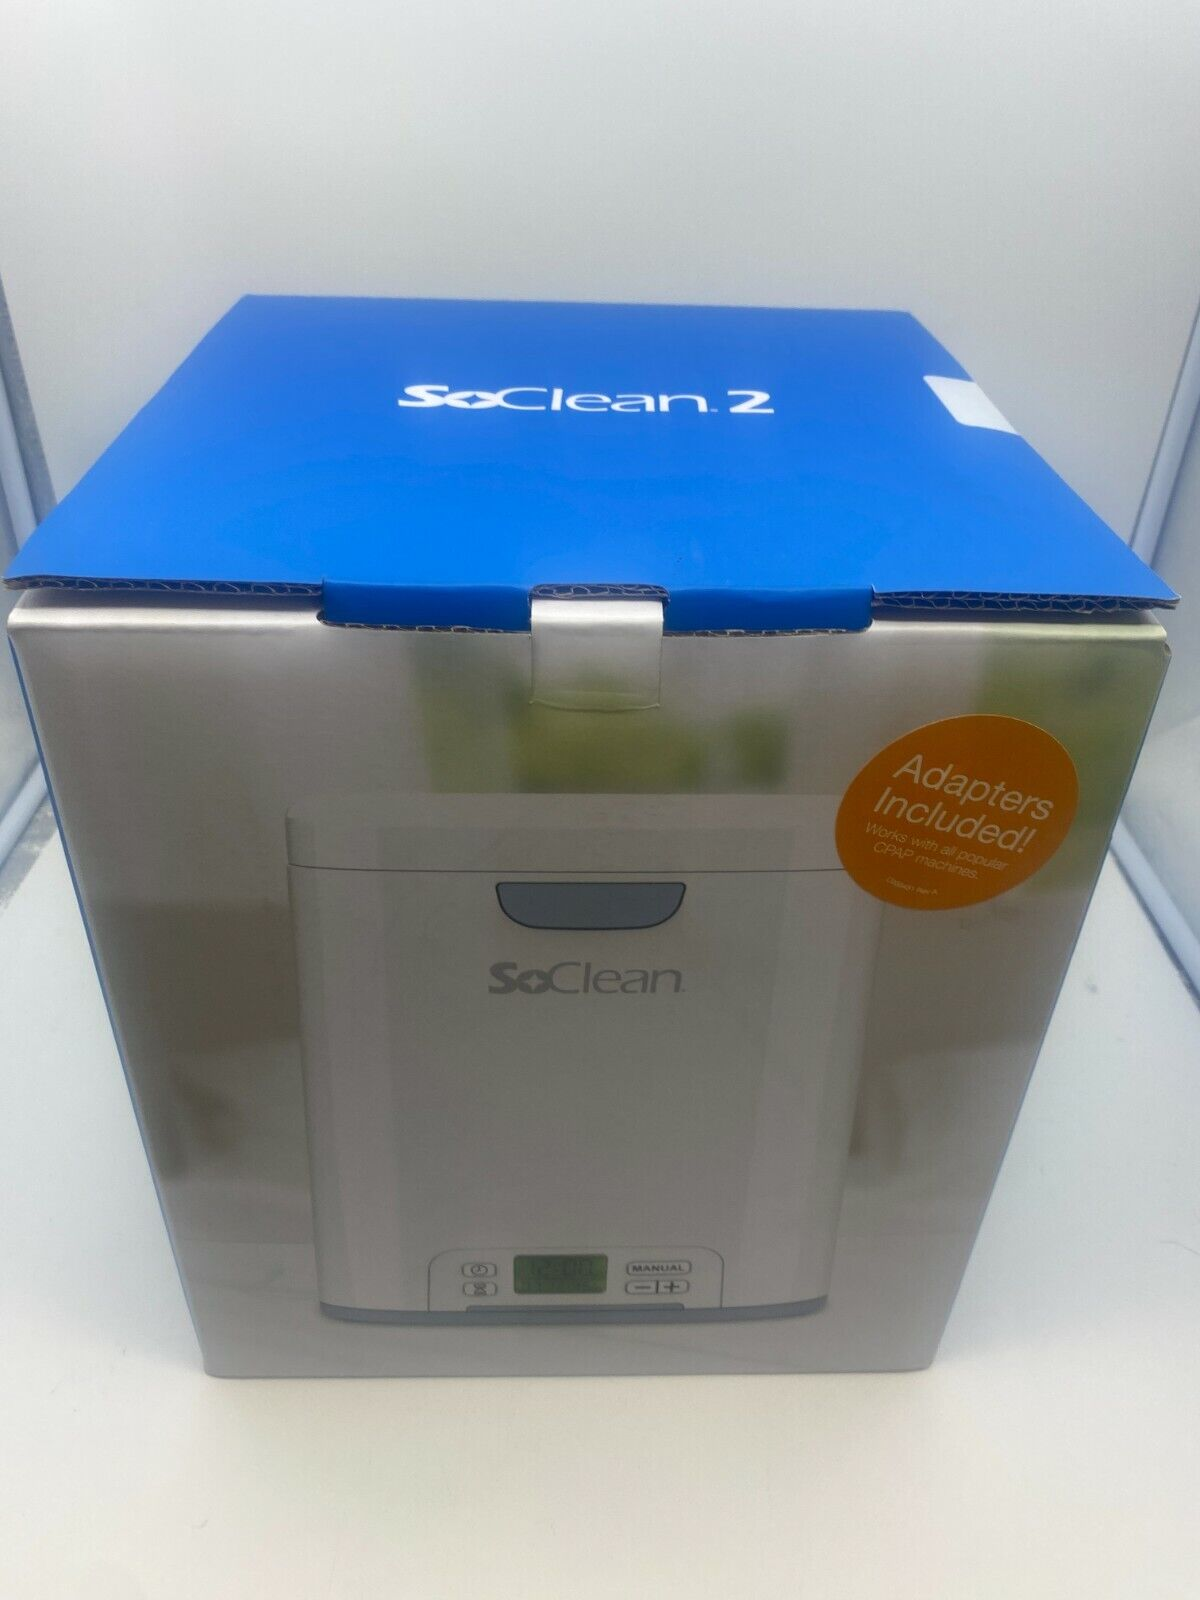 New Sealed SoClean 2 CPAP Equipment Automated Cleaner & Sani